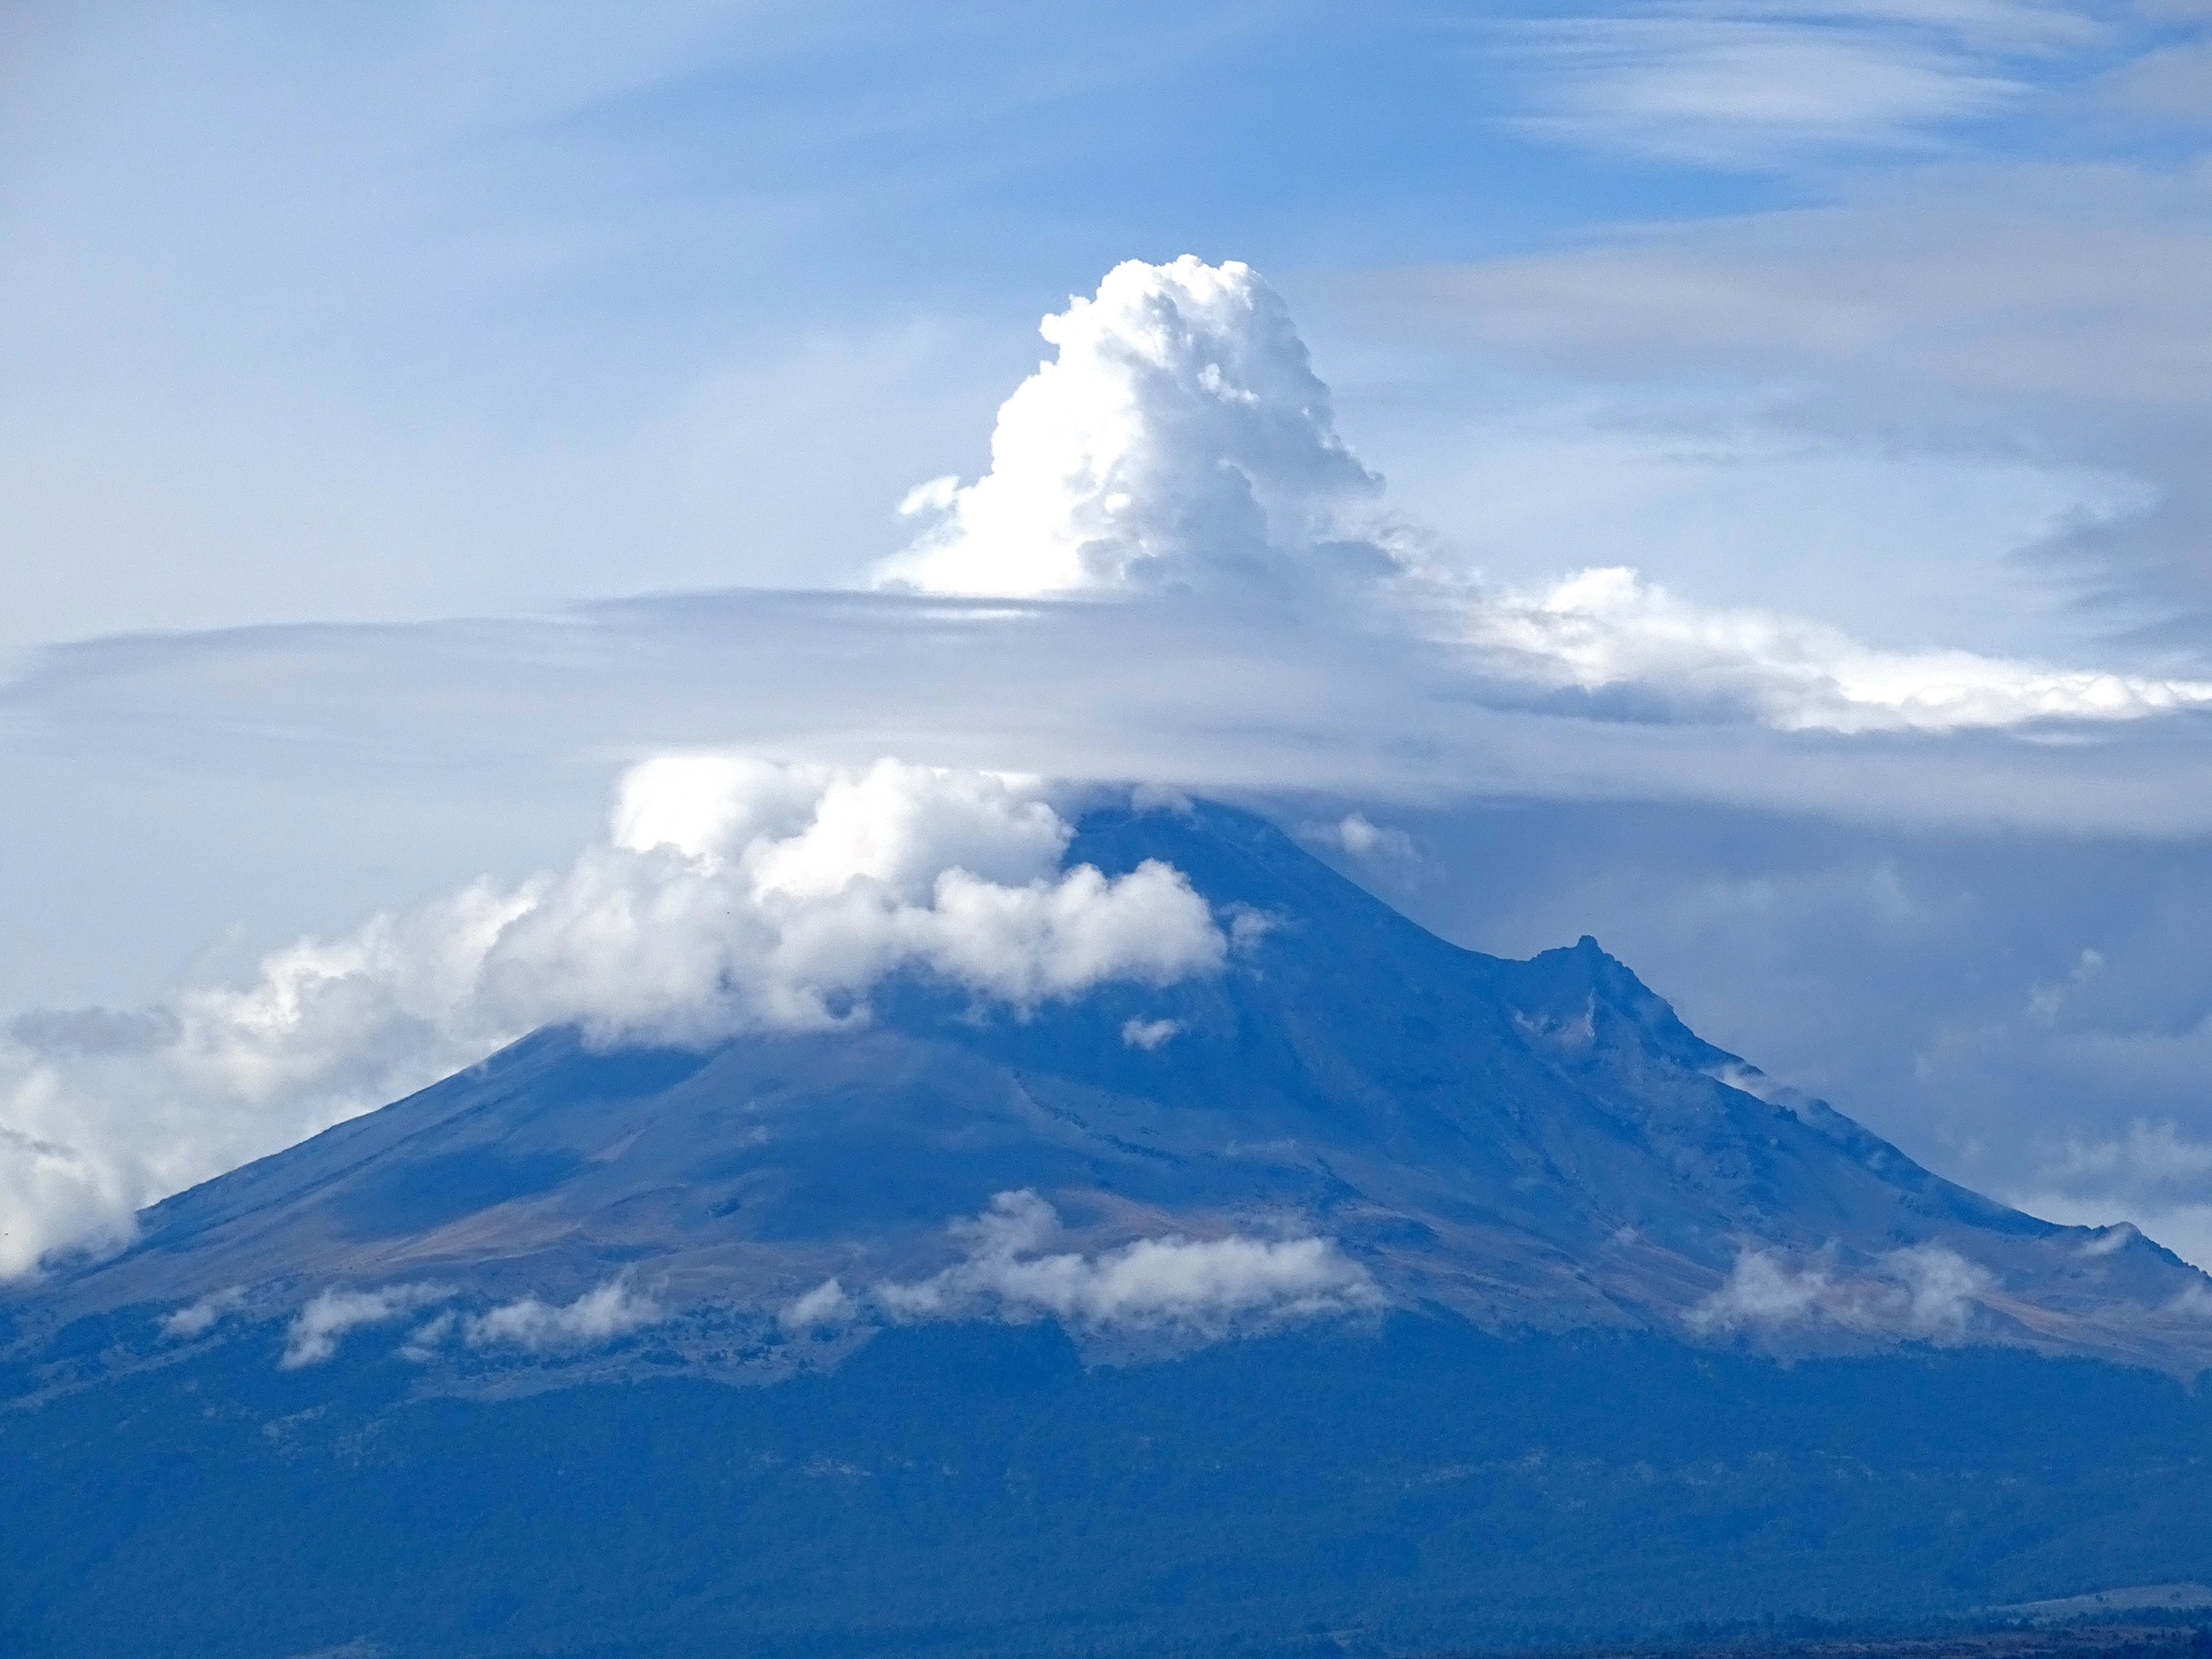 Popocatepetl (active volcano)